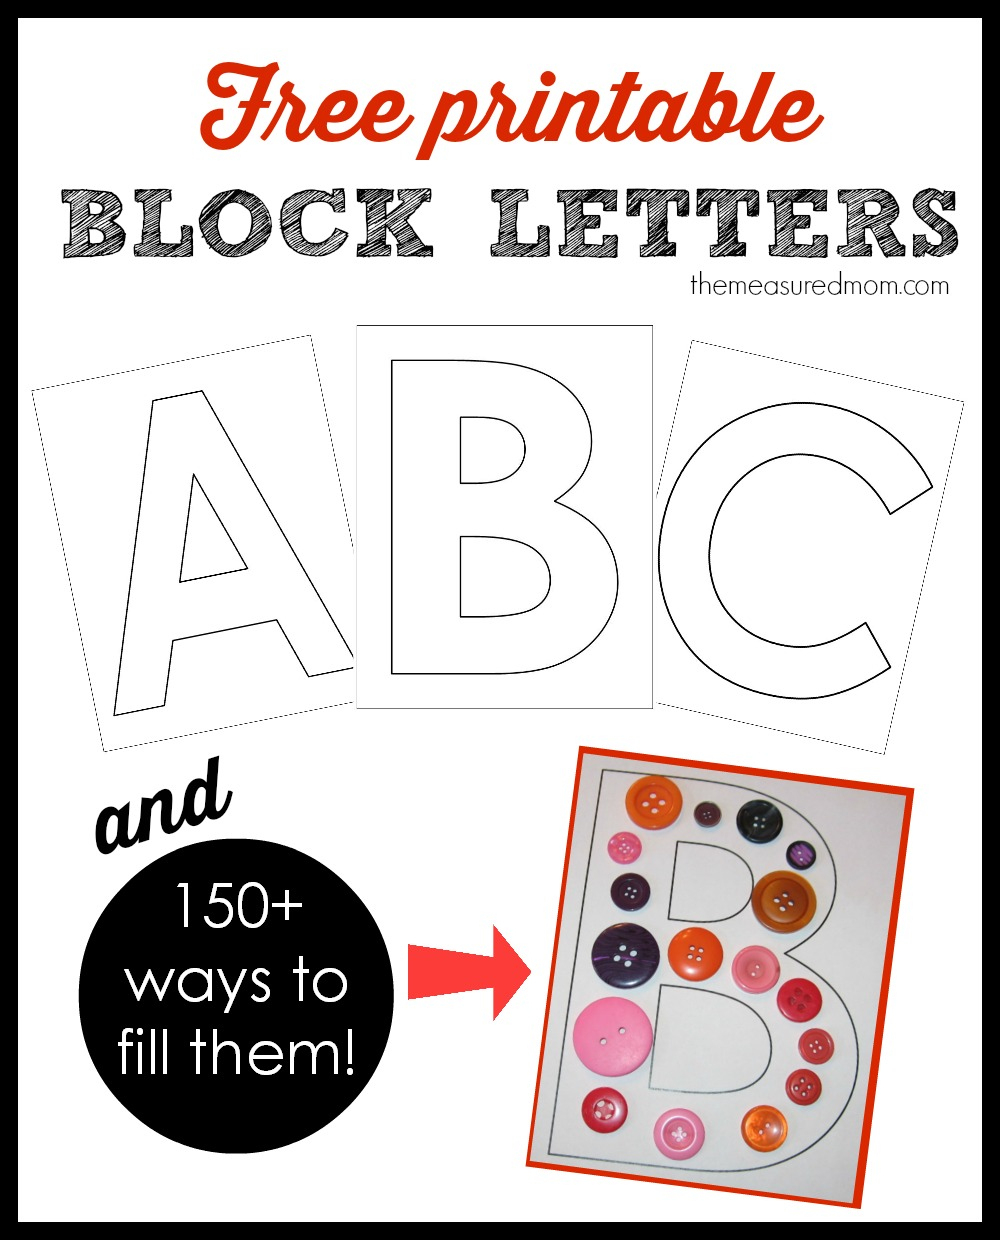 Printable Block Letters And Over 150 Ways To Fill Them! - The - Free Printable Block Letters